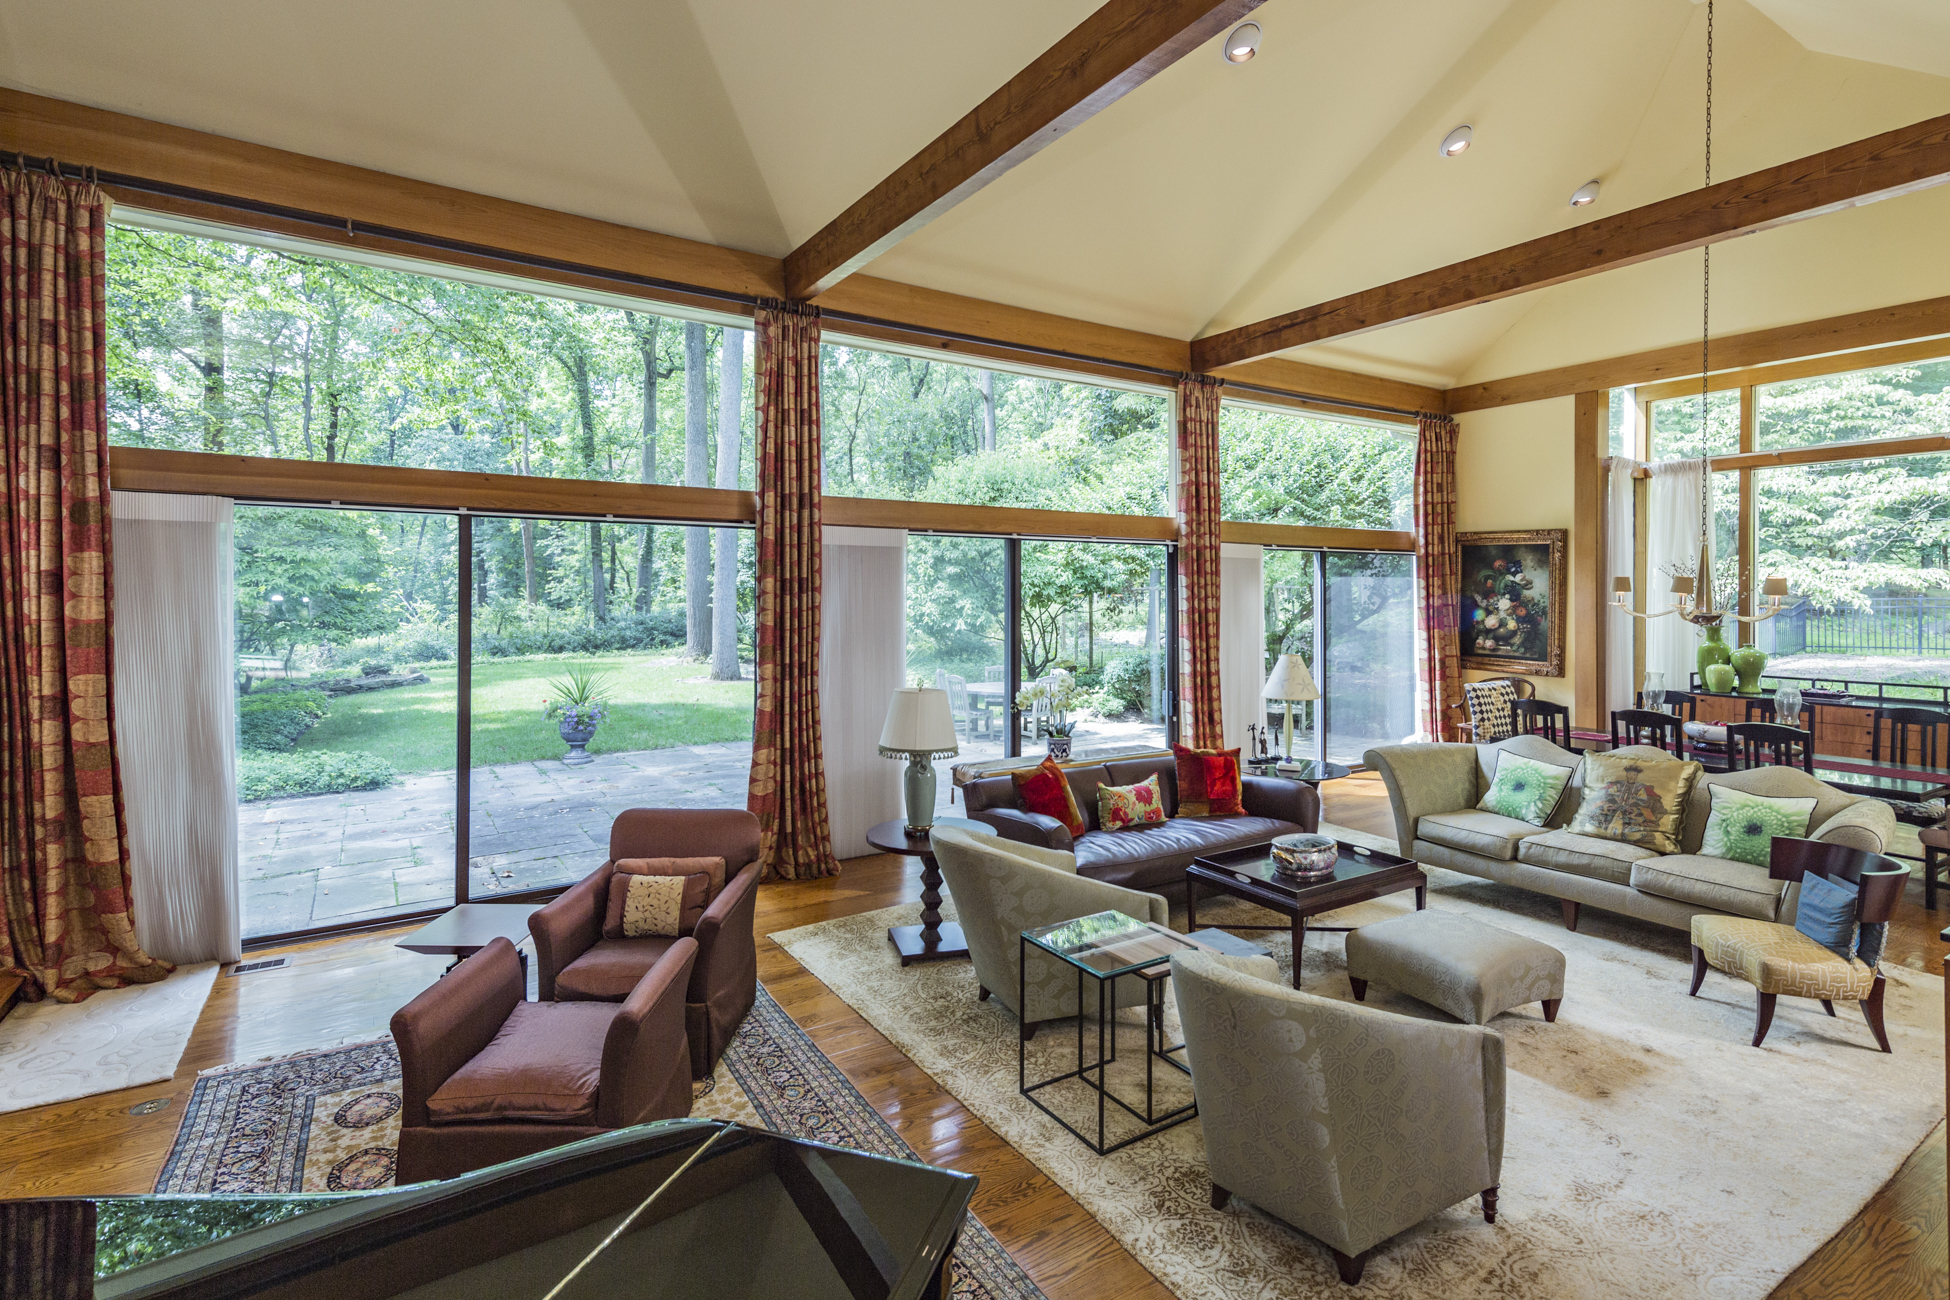 Additional photo for property listing at Impressive Space in Modern Princeton Home 1147 Stuart Road 普林斯顿, 新泽西州 08540 美国